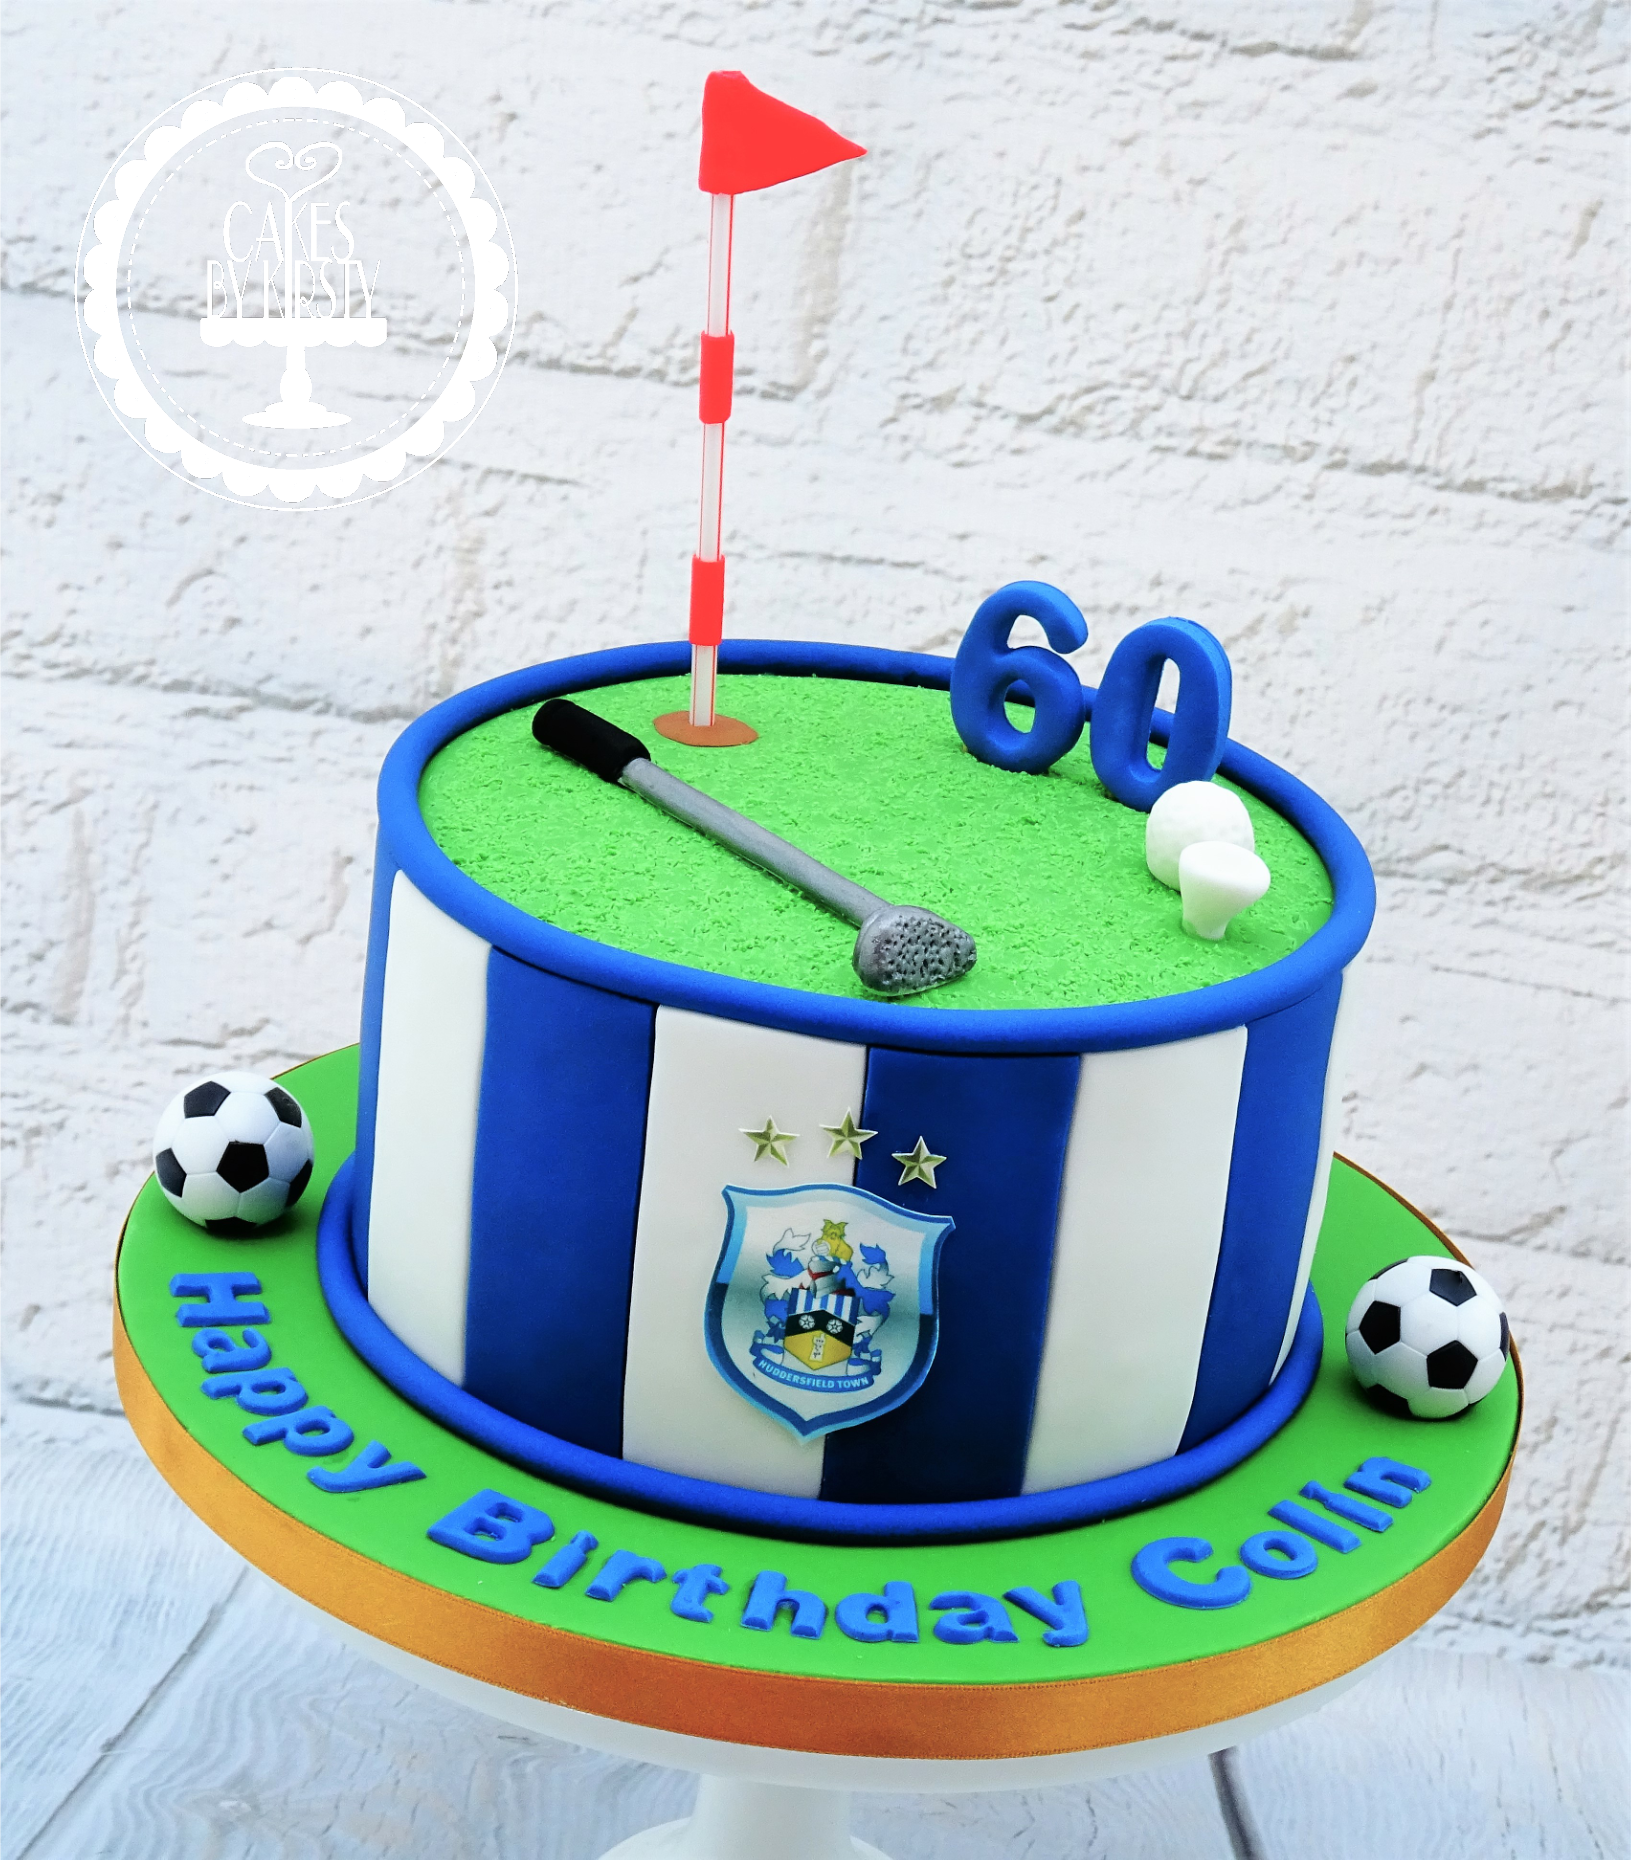 Huddersfield Town Football & Golf Cake